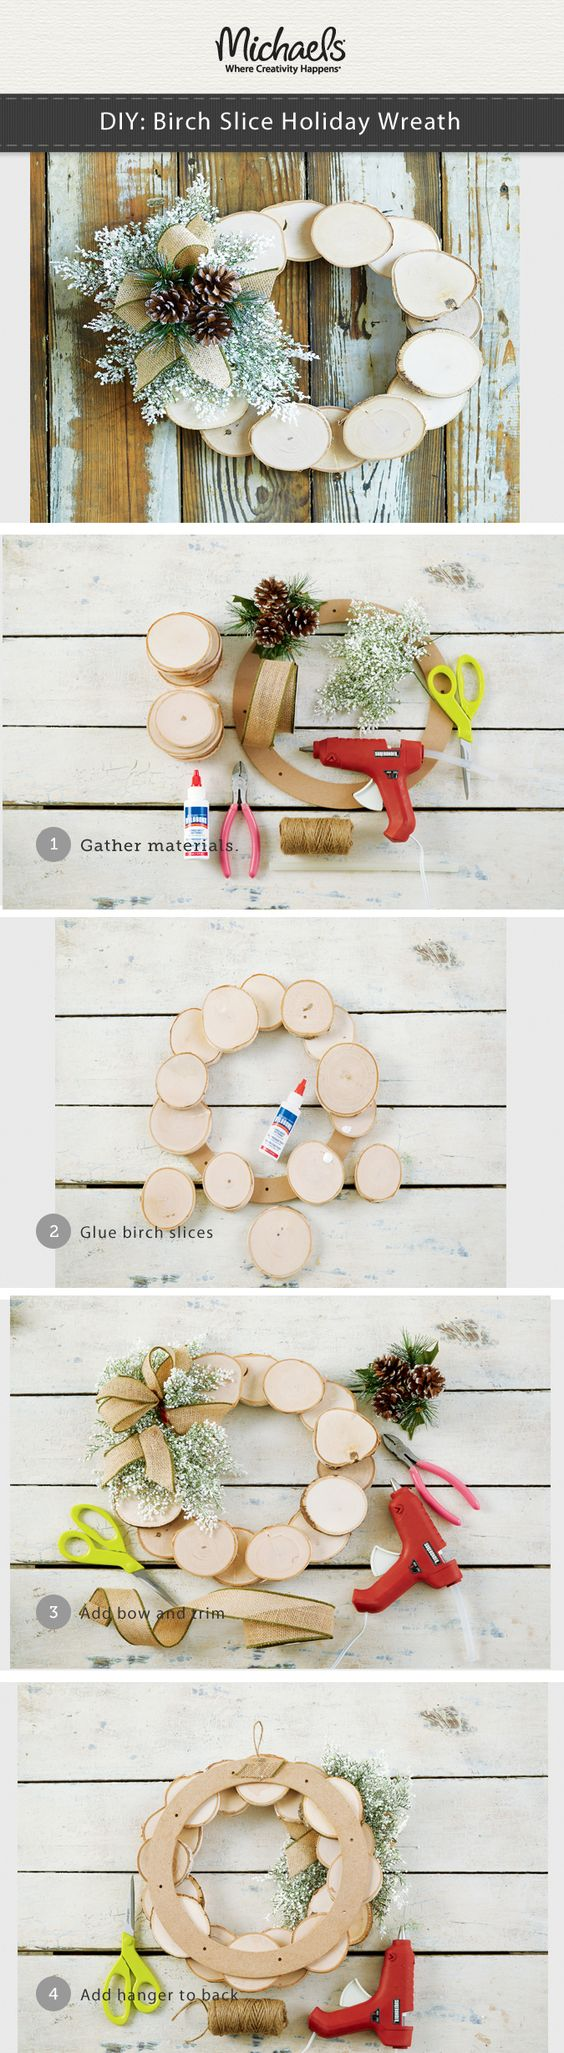 DIY Birch Slice Holiday Wreath.